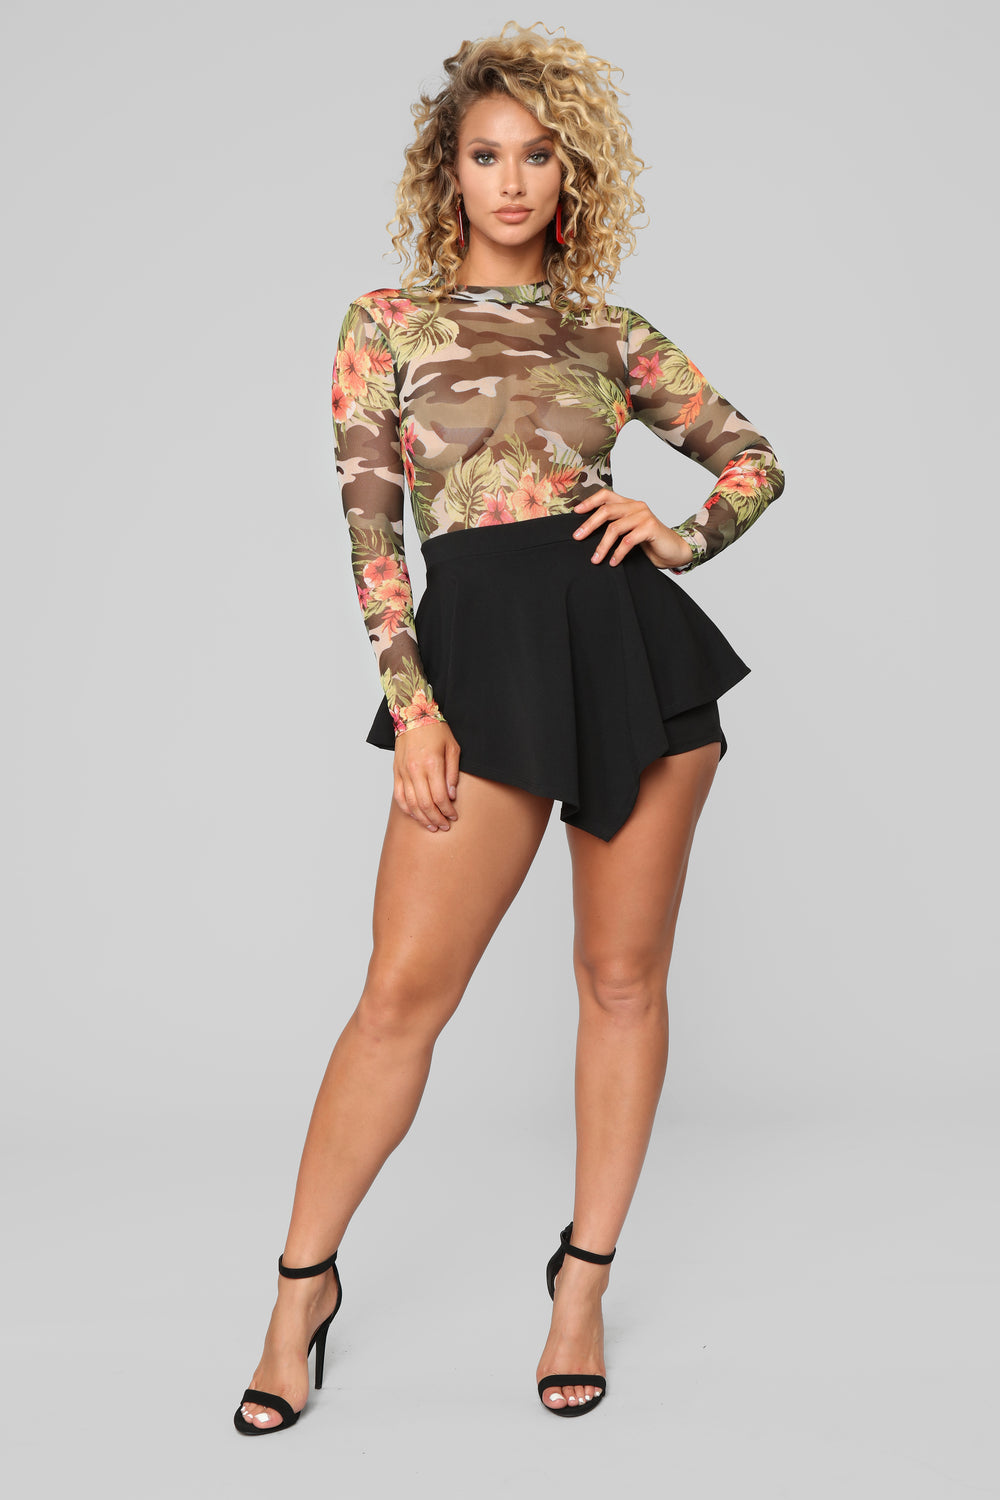 Don't Mesh With Me Romper - Black